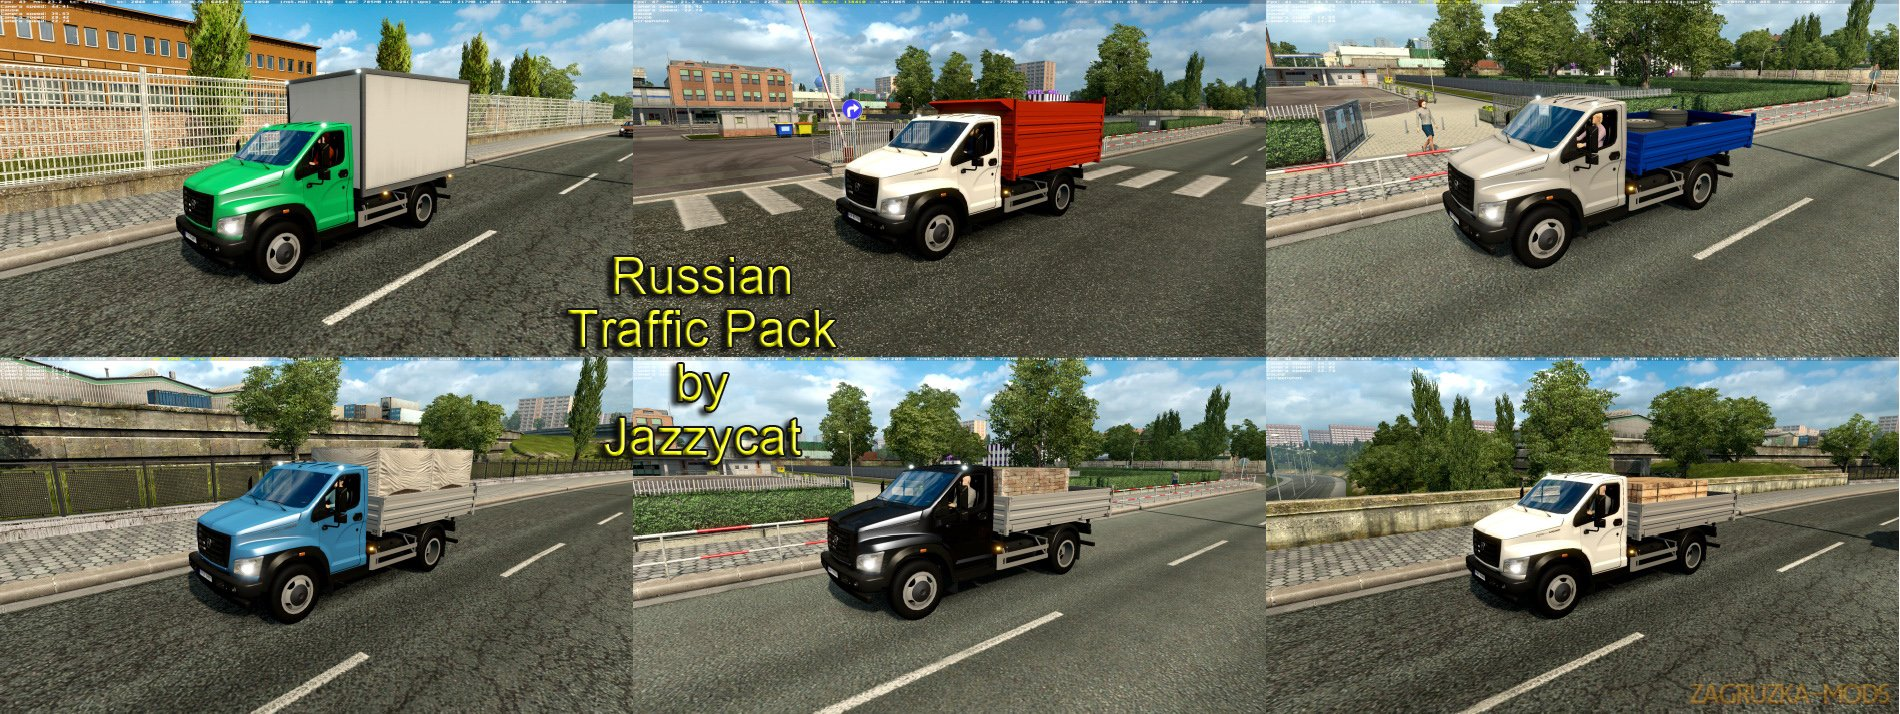 Russian Traffic Pack v2.1 by Jazzycat